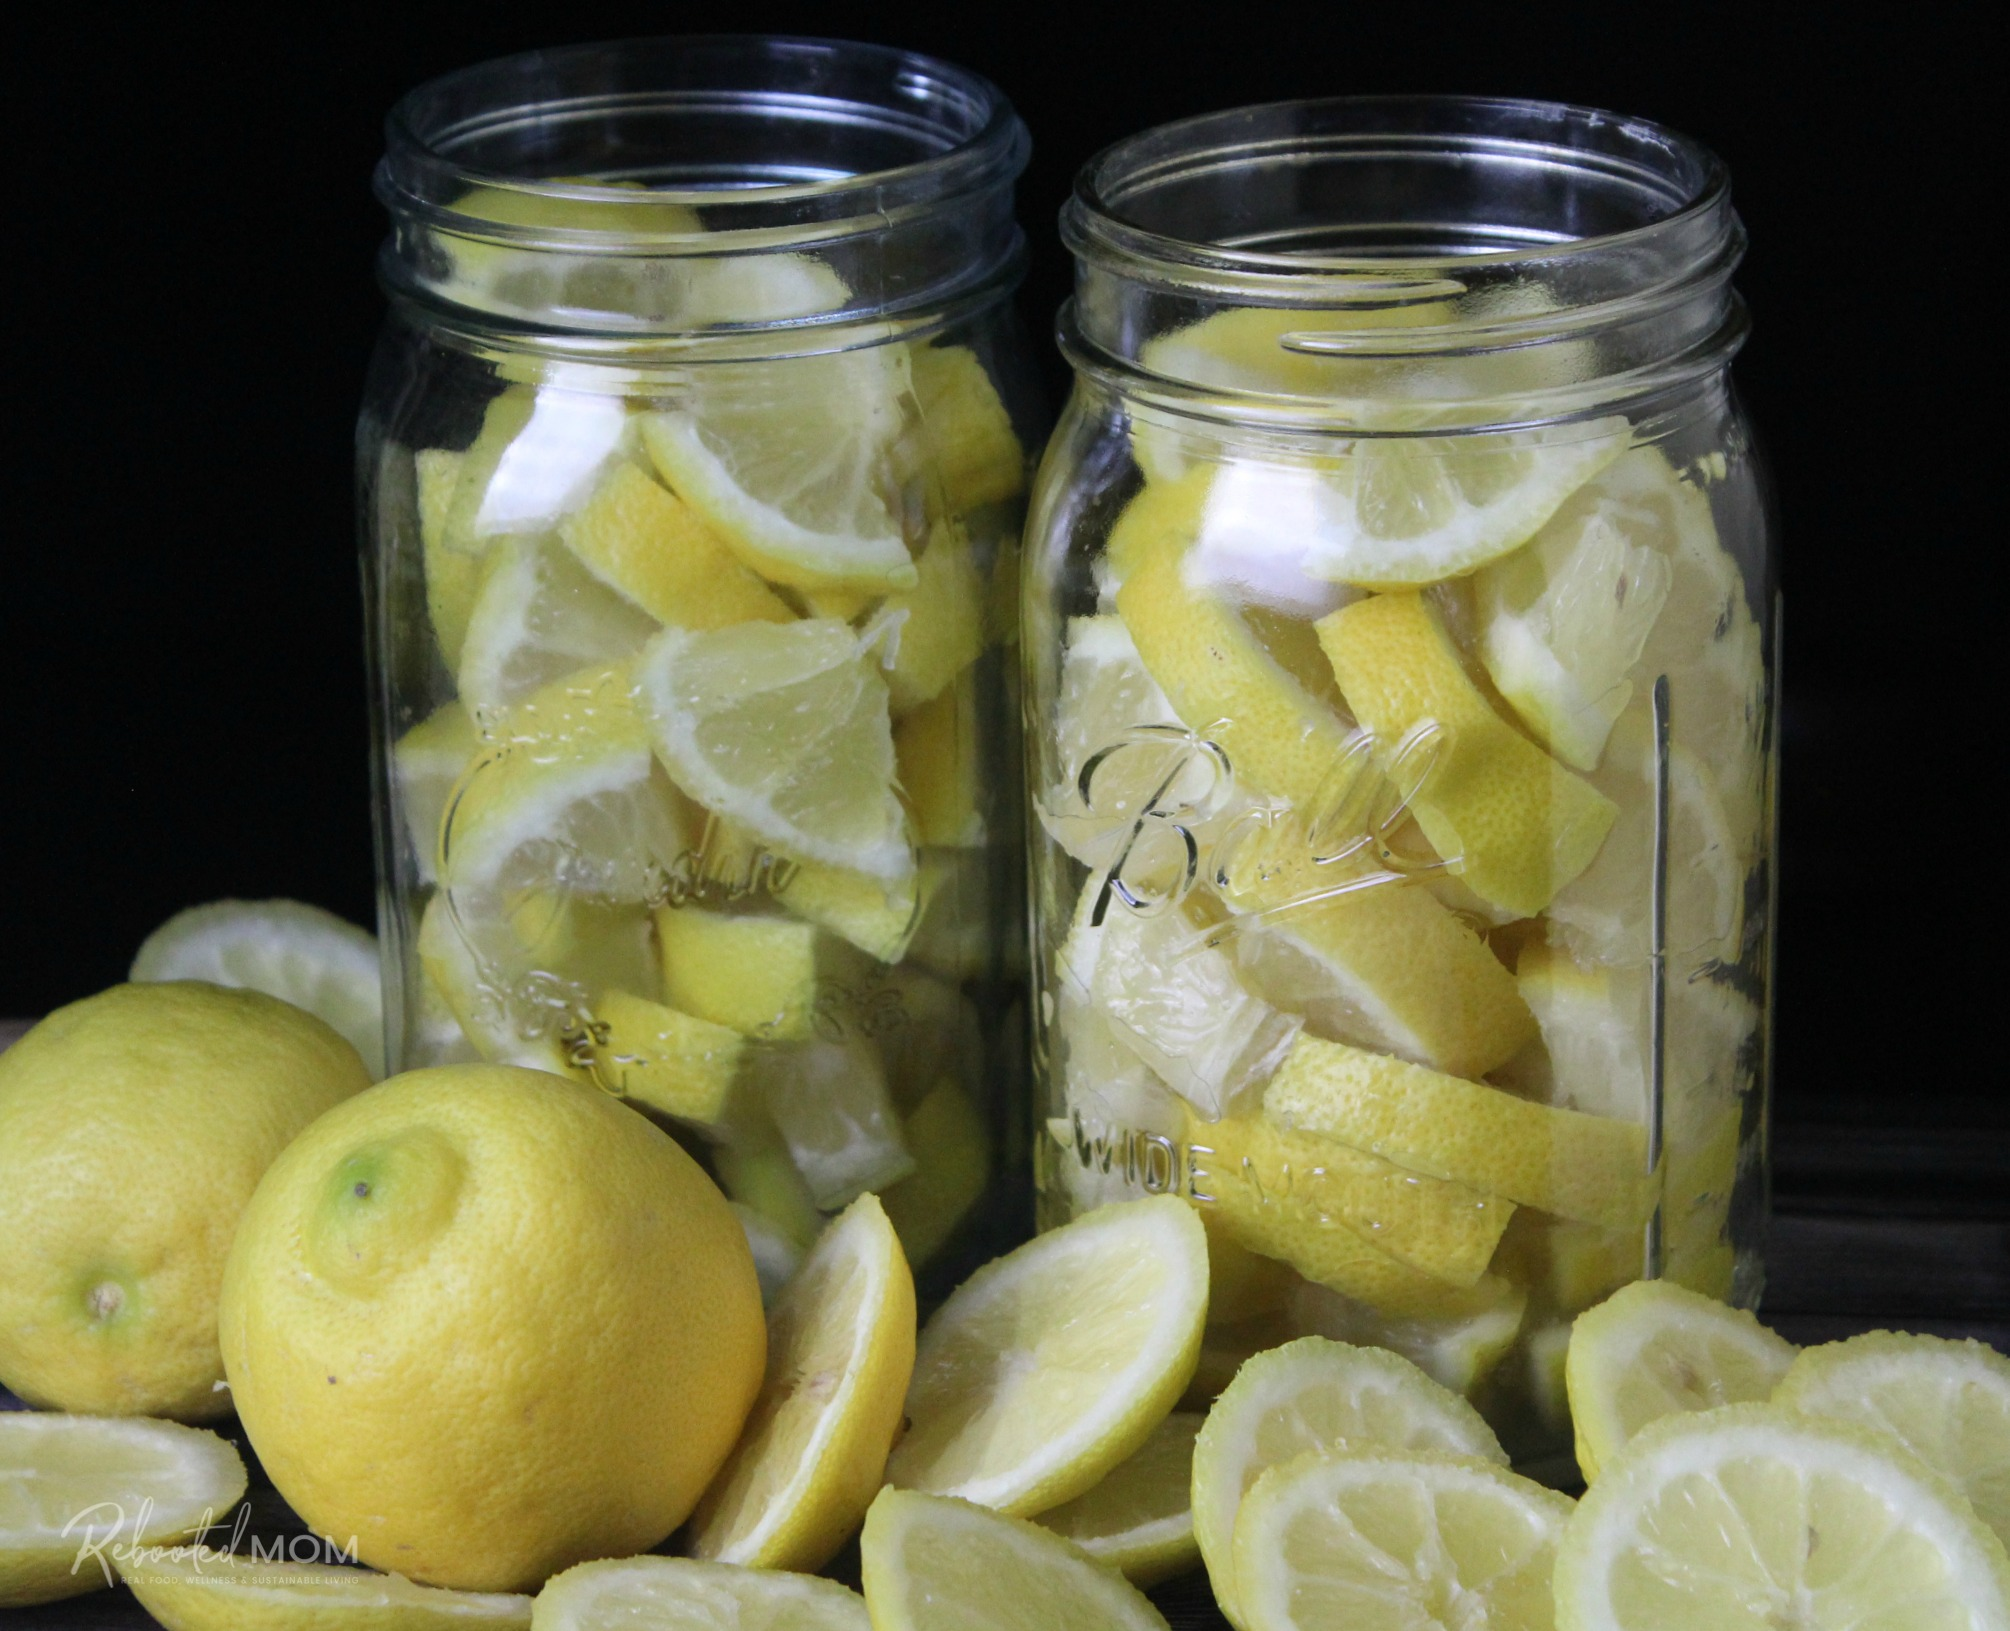 Fermenting lemons \\ An amazing condiment, preserved lemons (fermented lemons) have added probiotics and are a wonderful addition to vegetable, pasta, meat and salad dishes.